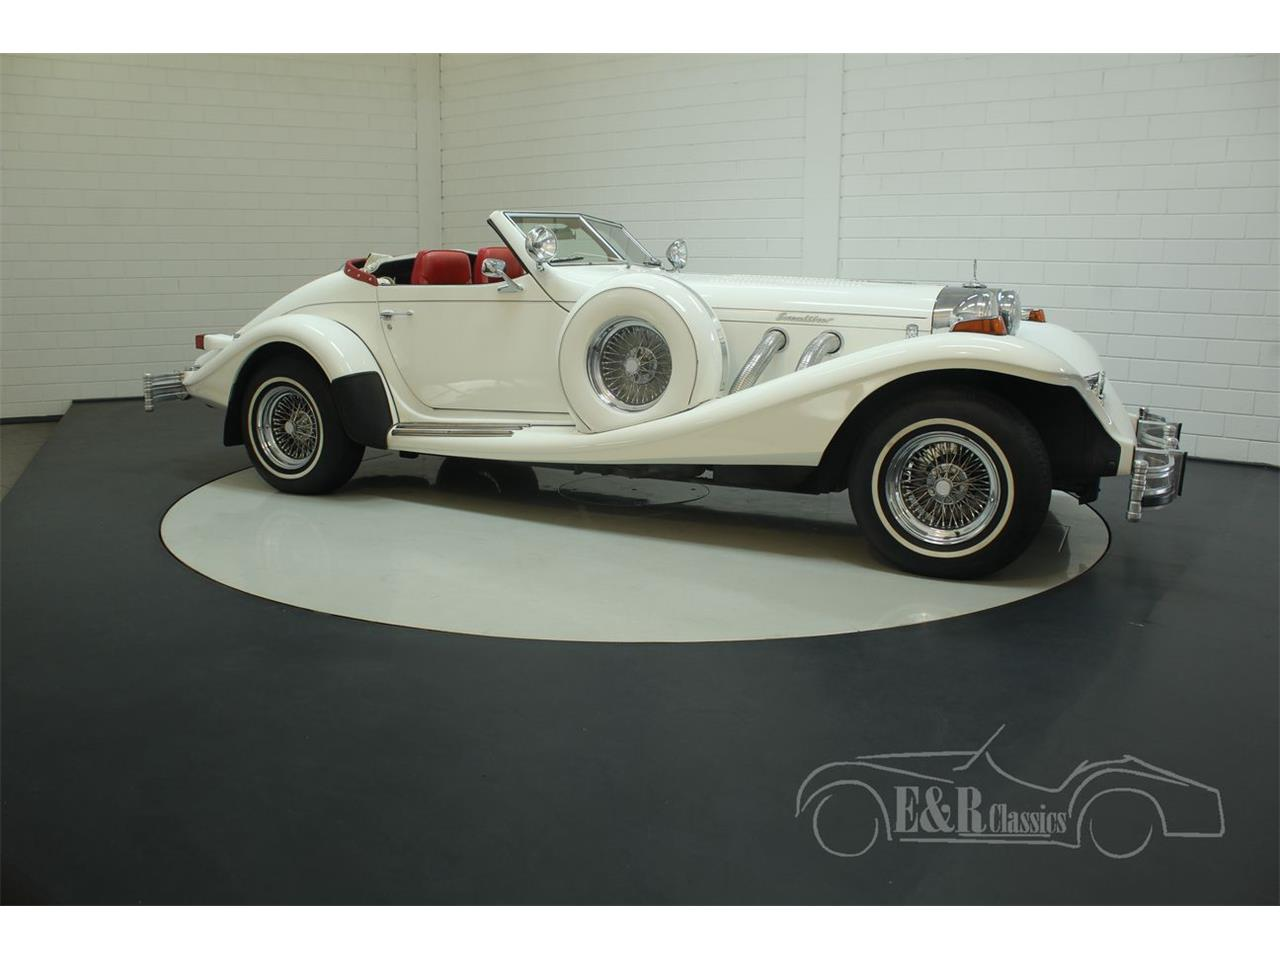 Large Picture of 1982 Excalibur Series IV Phaeton located in noord brabant - $78,450.00 Offered by E & R Classics - Q3GF